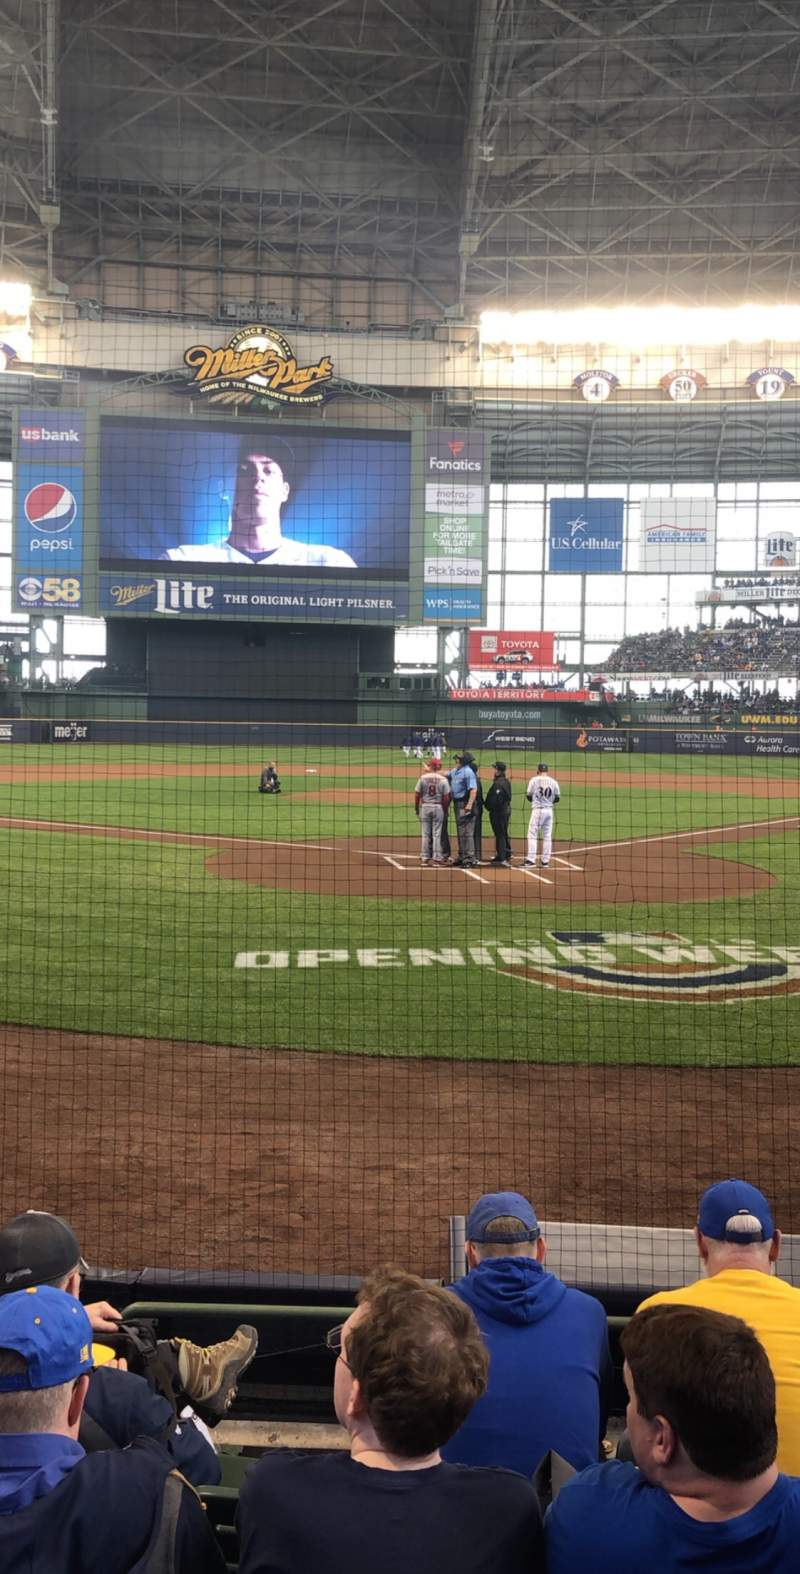 Seating view for Miller Park Section 118 Row 5 Seat 9